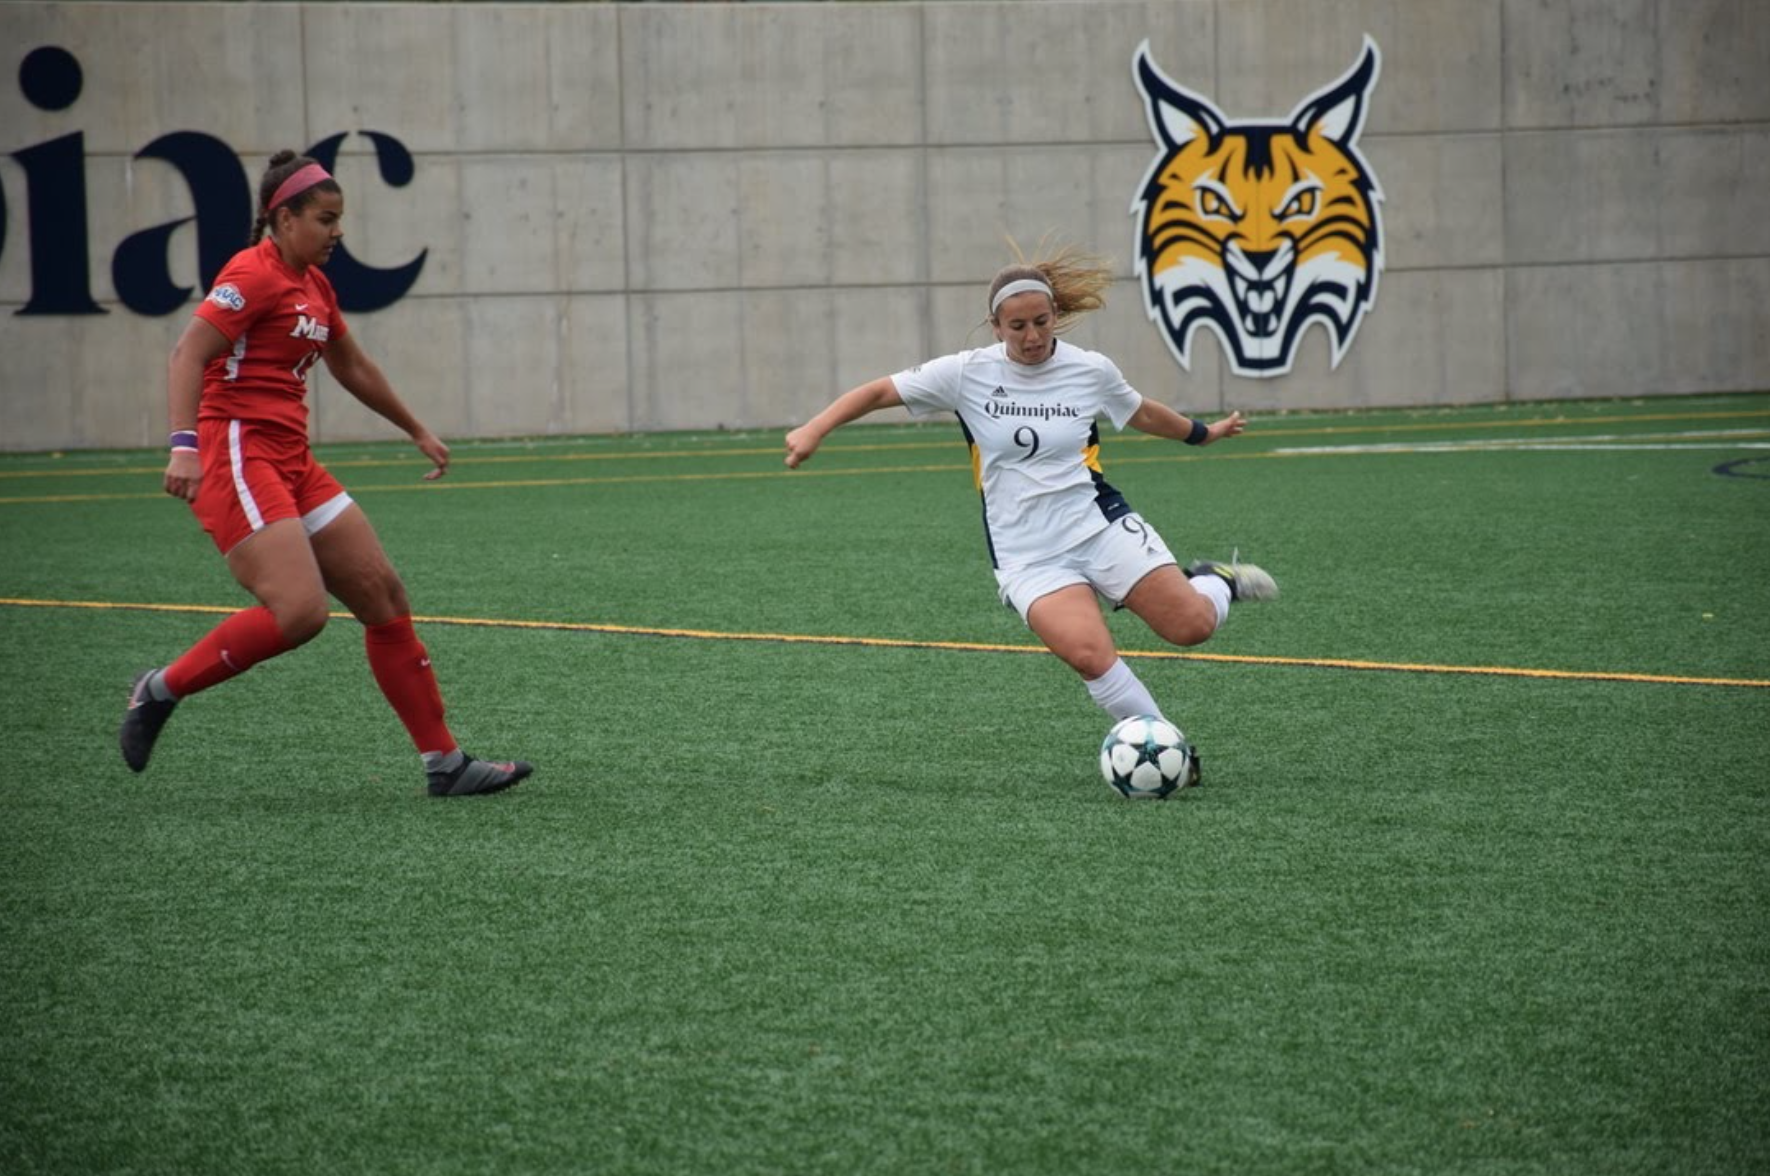 Quinnipiac women's soccer finishes even with Marist on Senior Day